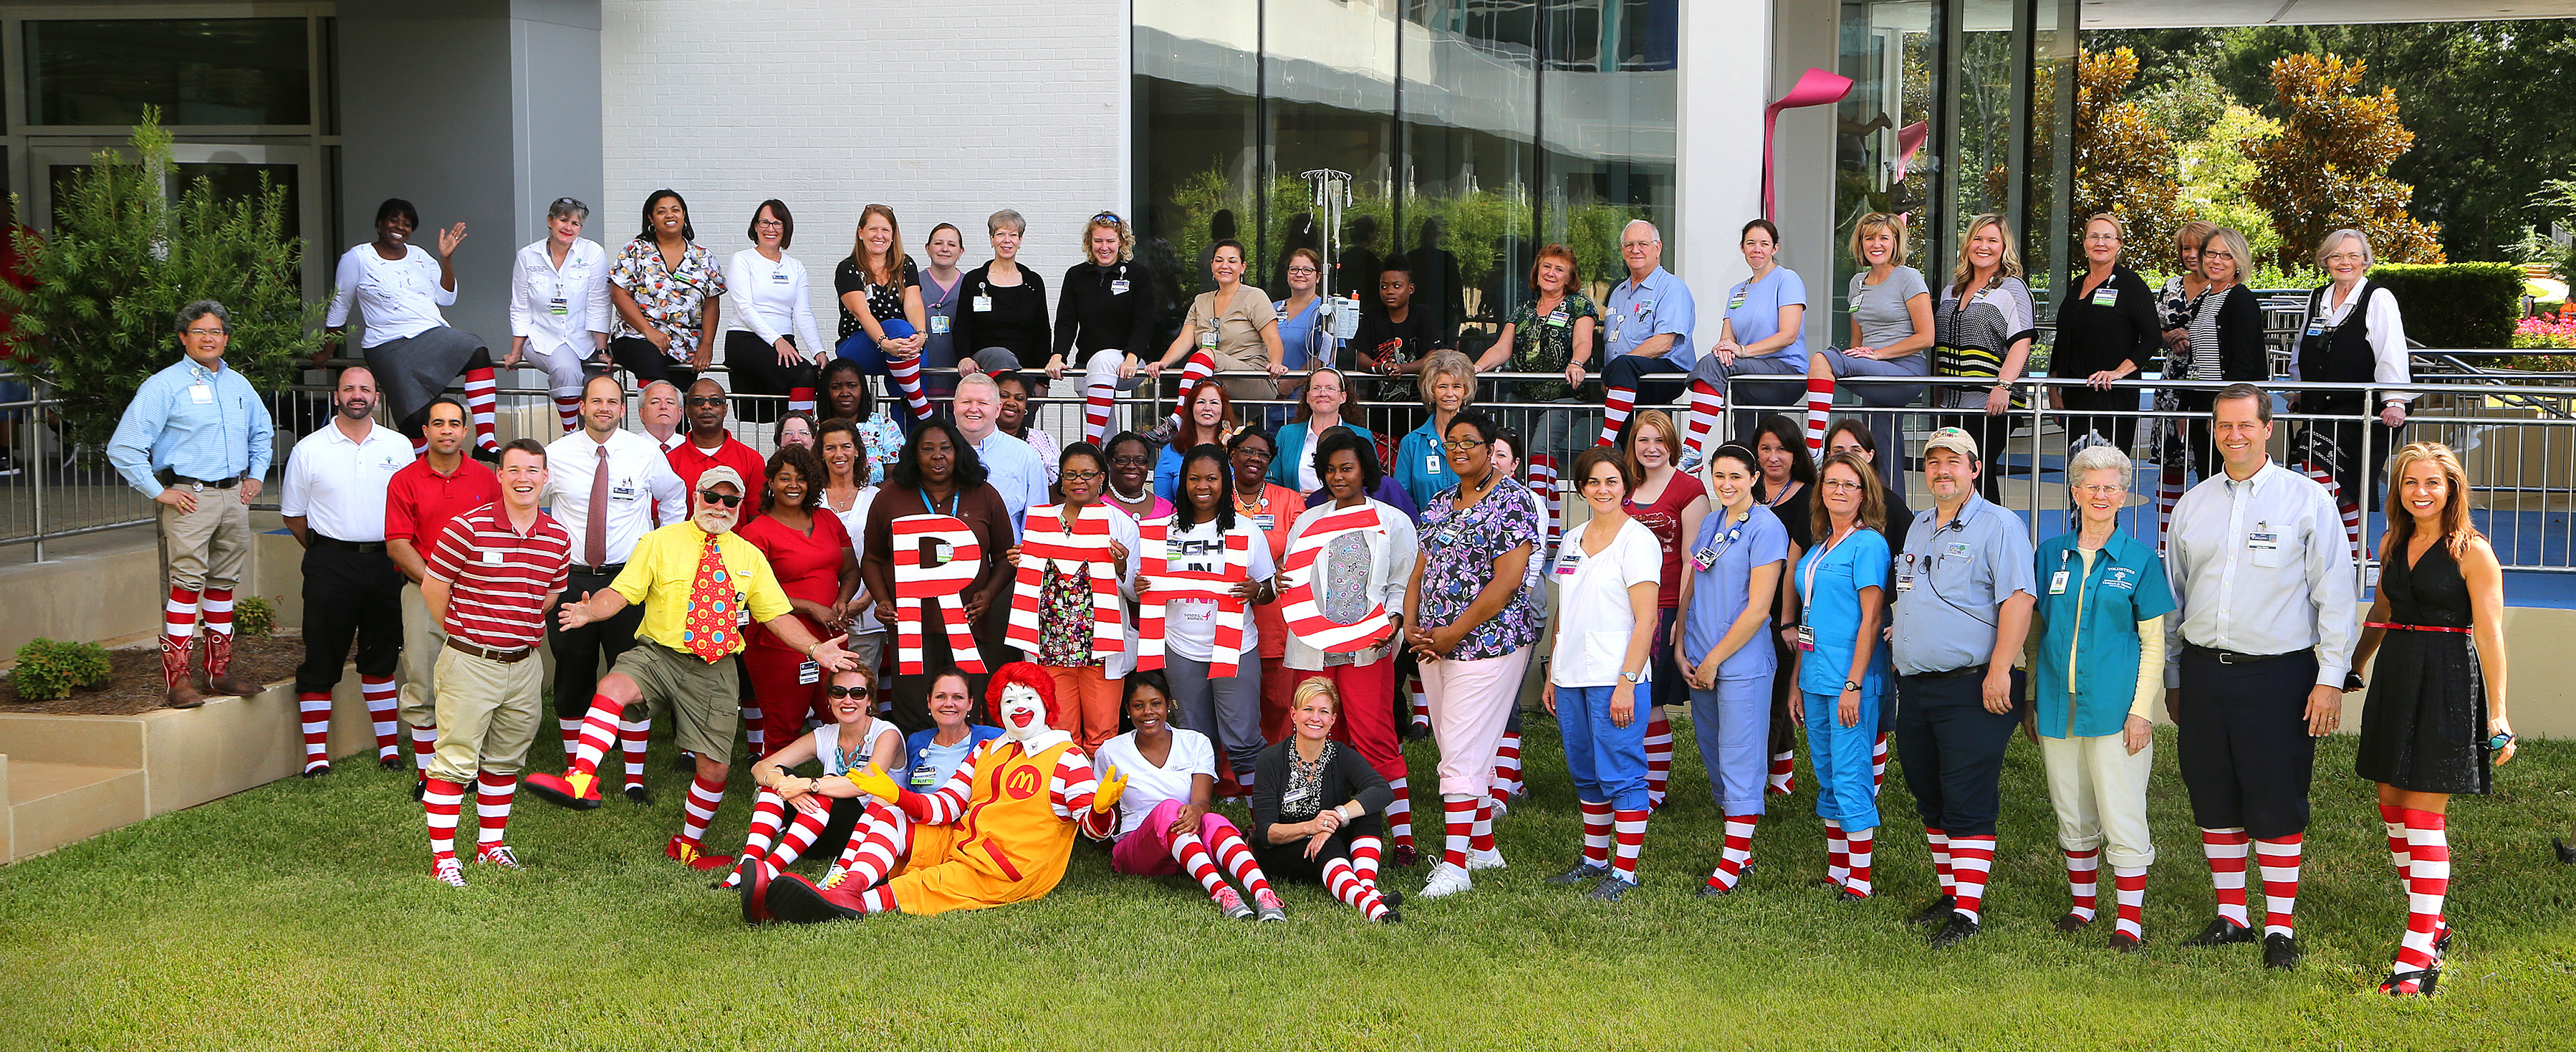 RMHC_RedSockDay